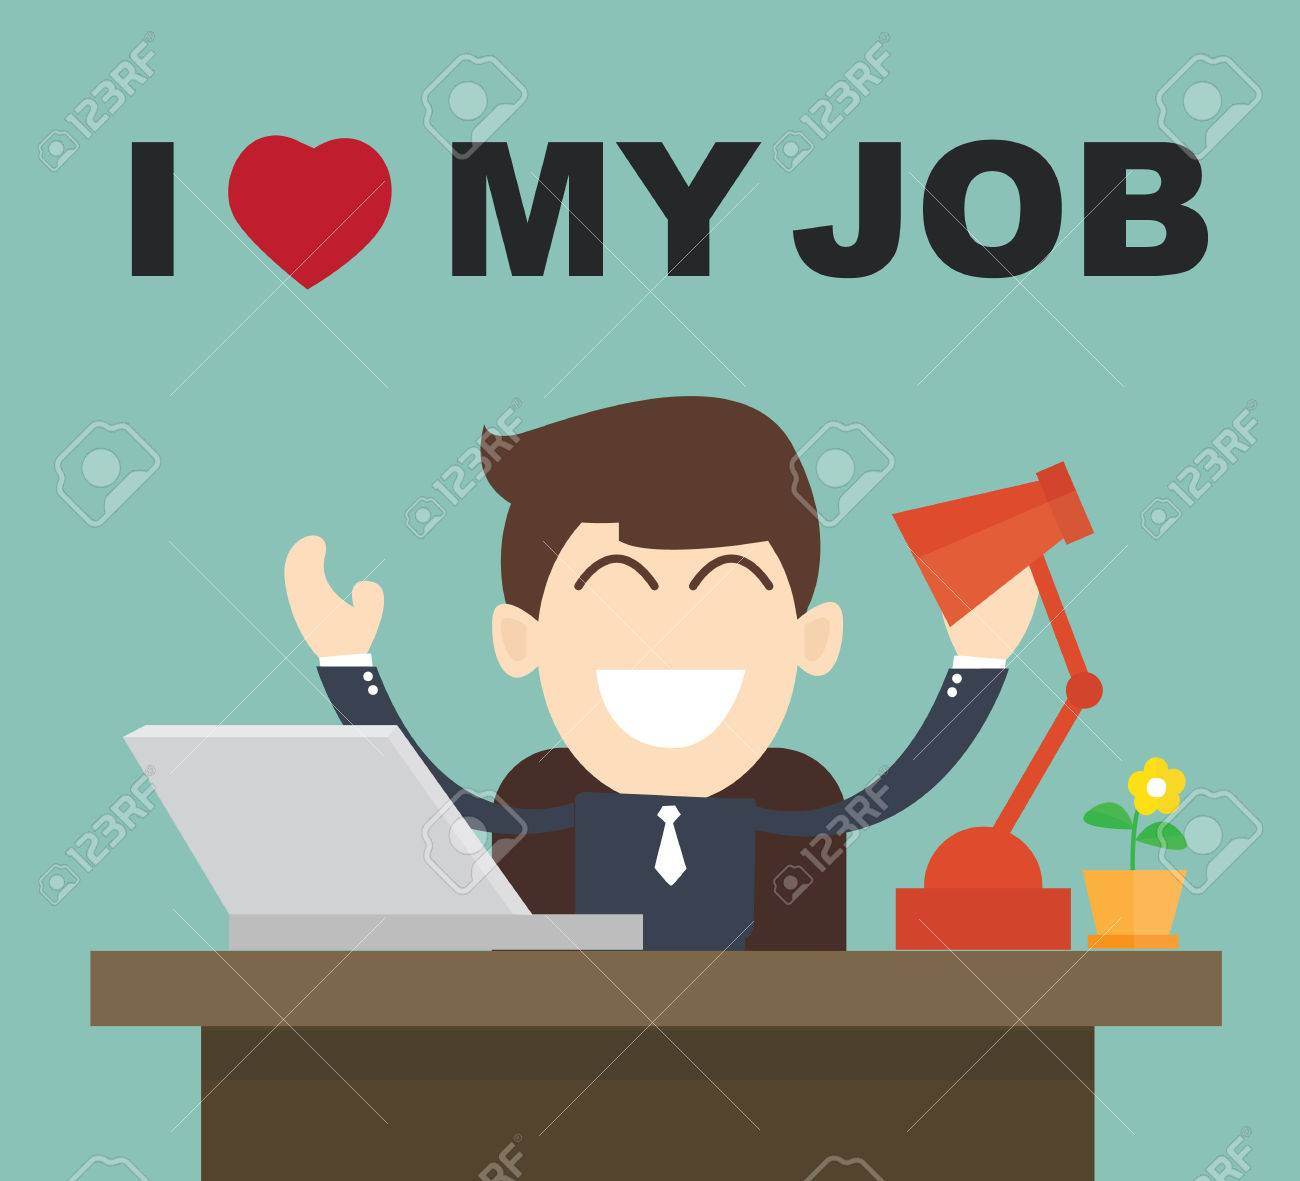 i love my job businessman happy best job royalty cliparts i love my job businessman happy best job stock vector 35133698